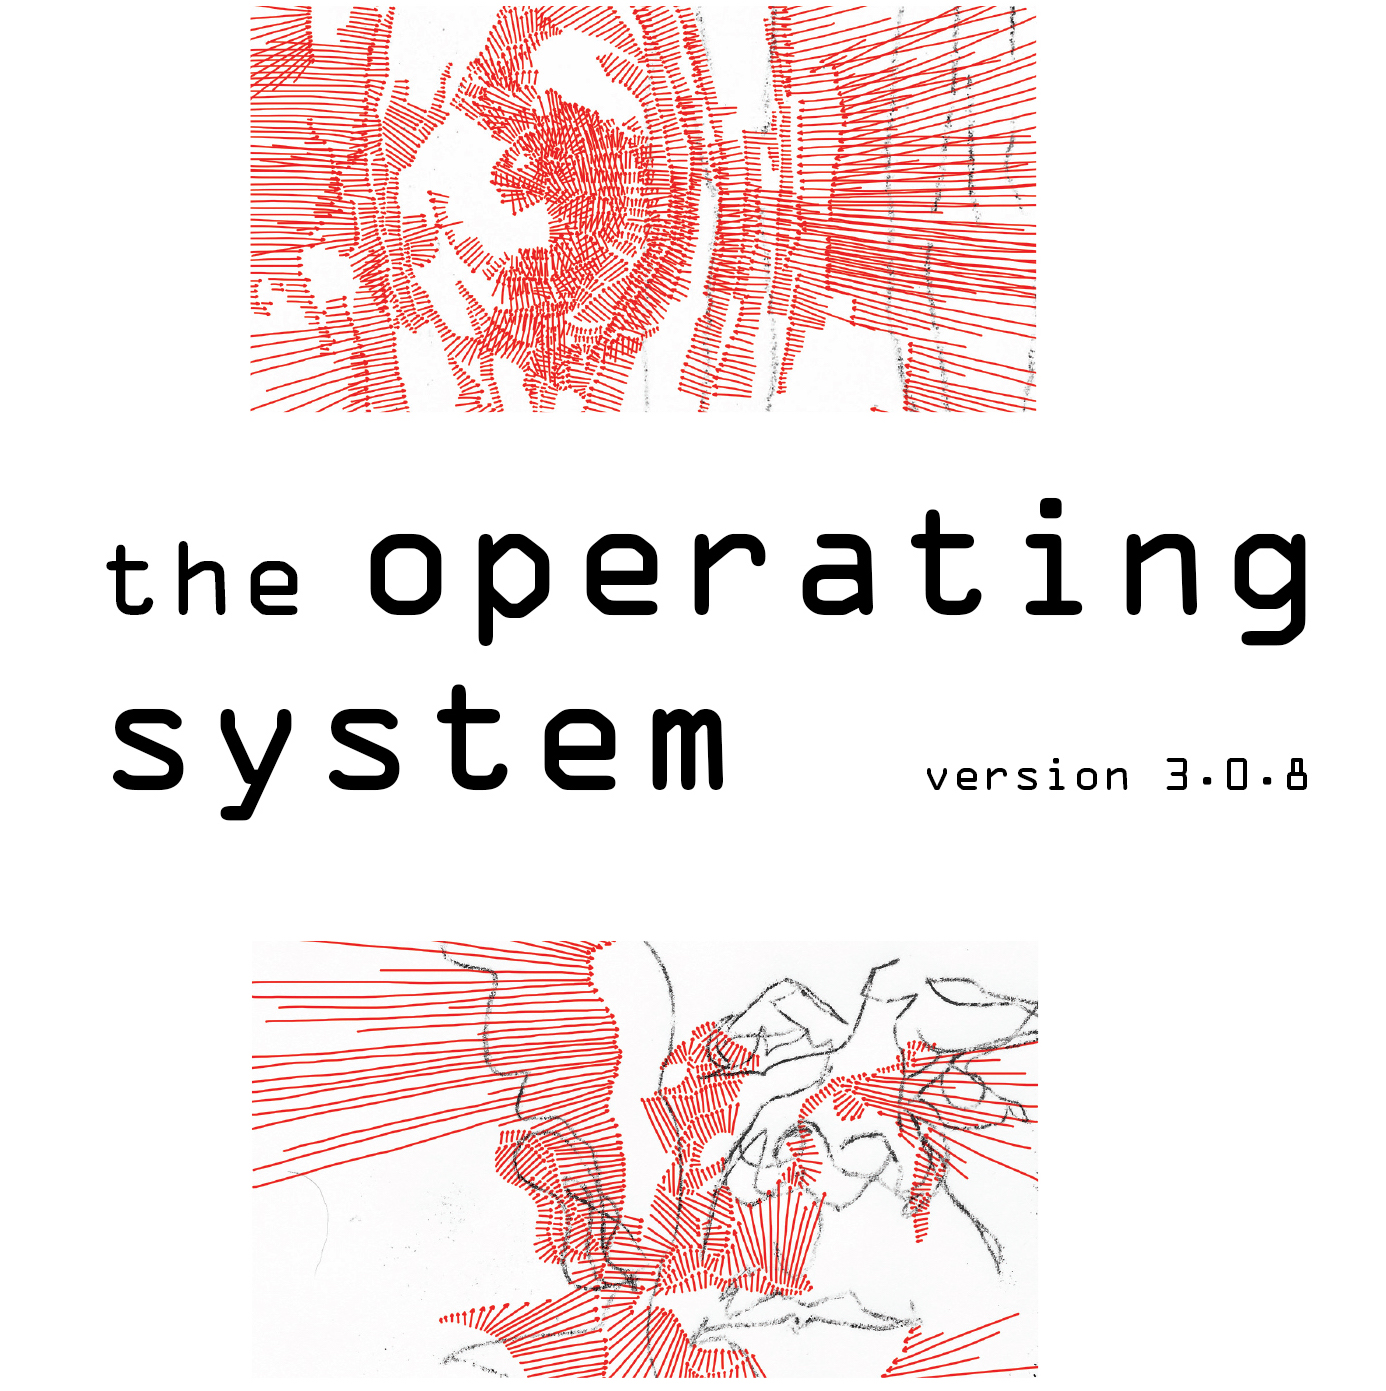 The Operating System logo